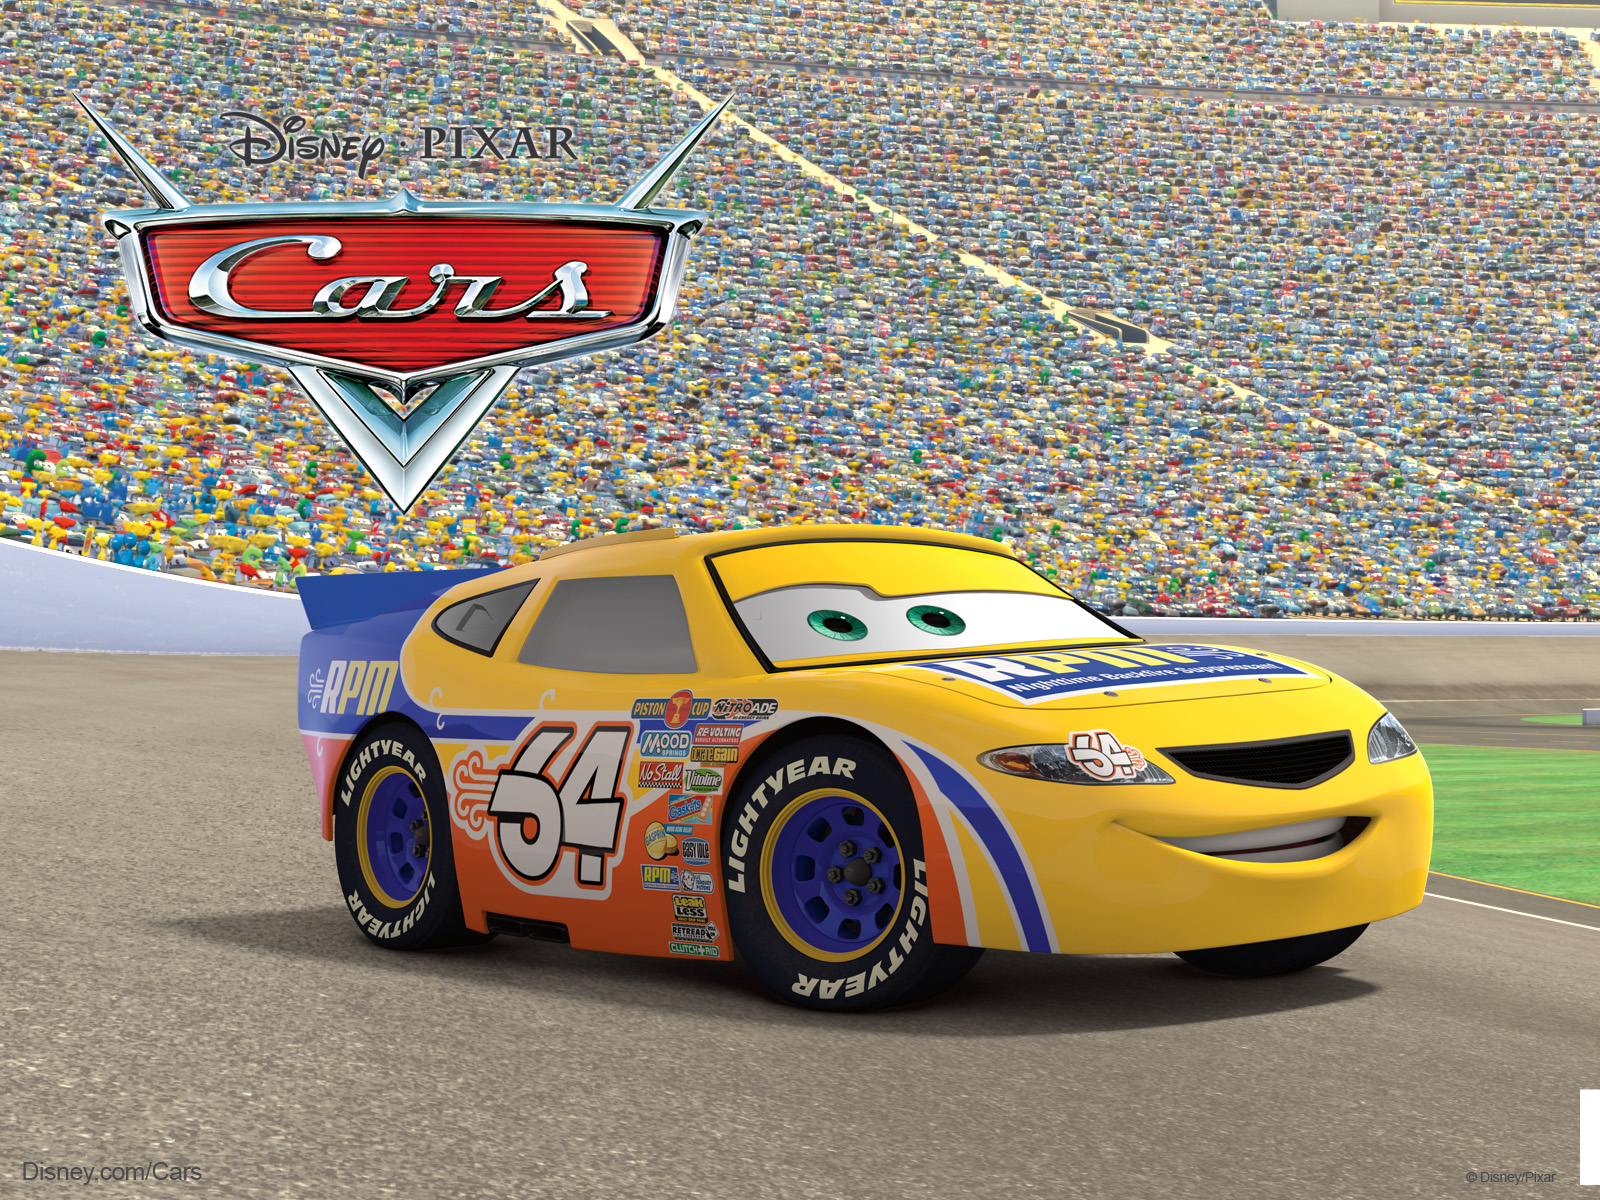 Winford Rutherford Race Car From Pixar Cars Movie Desktop Wallpaper